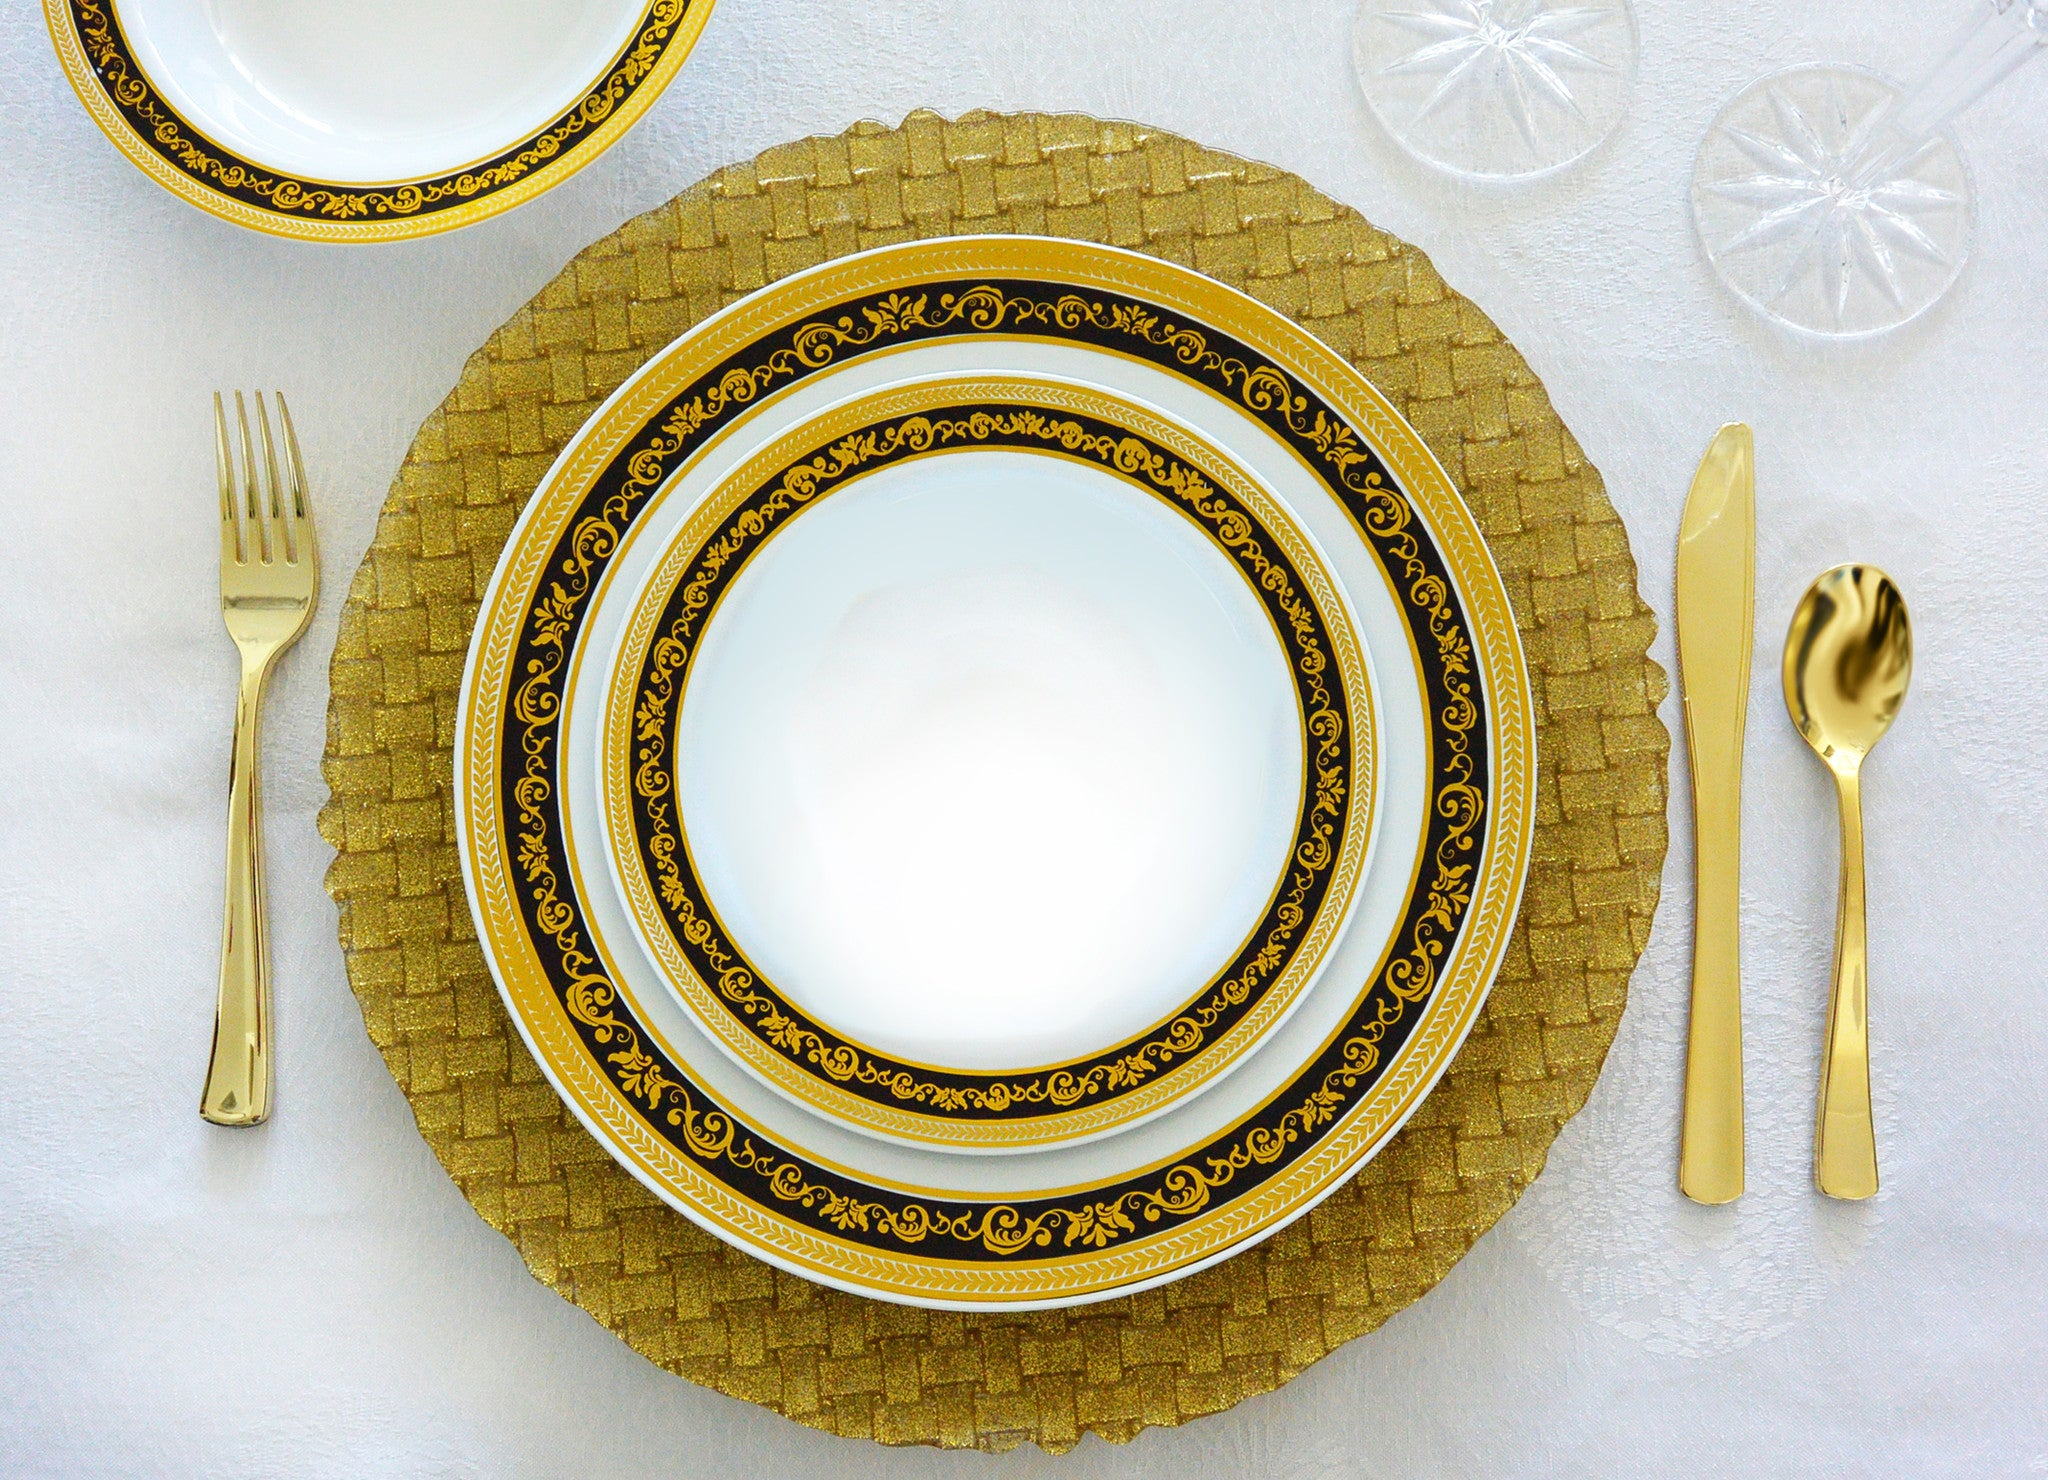 & Royal Collection Black and Gold - Royalty Settings